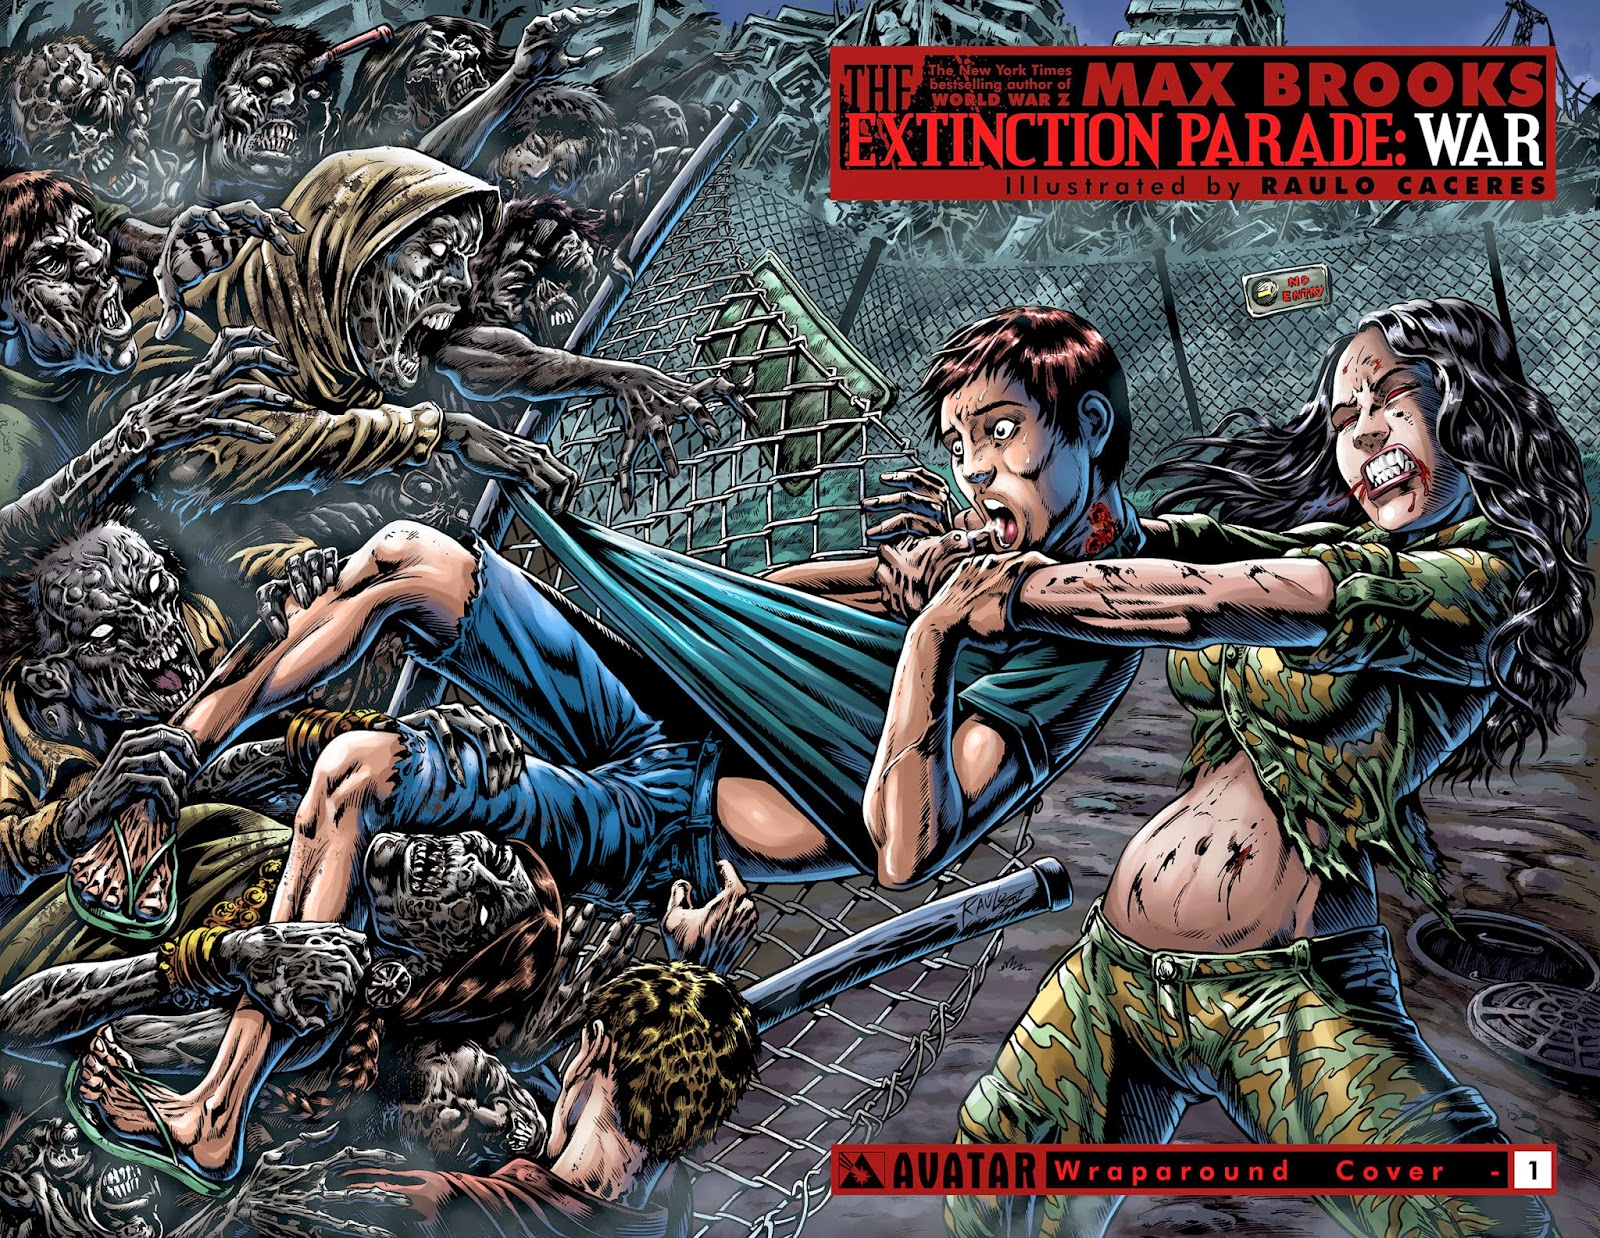 Cover tratta dalla seconda serie di The Extinction Parade: War